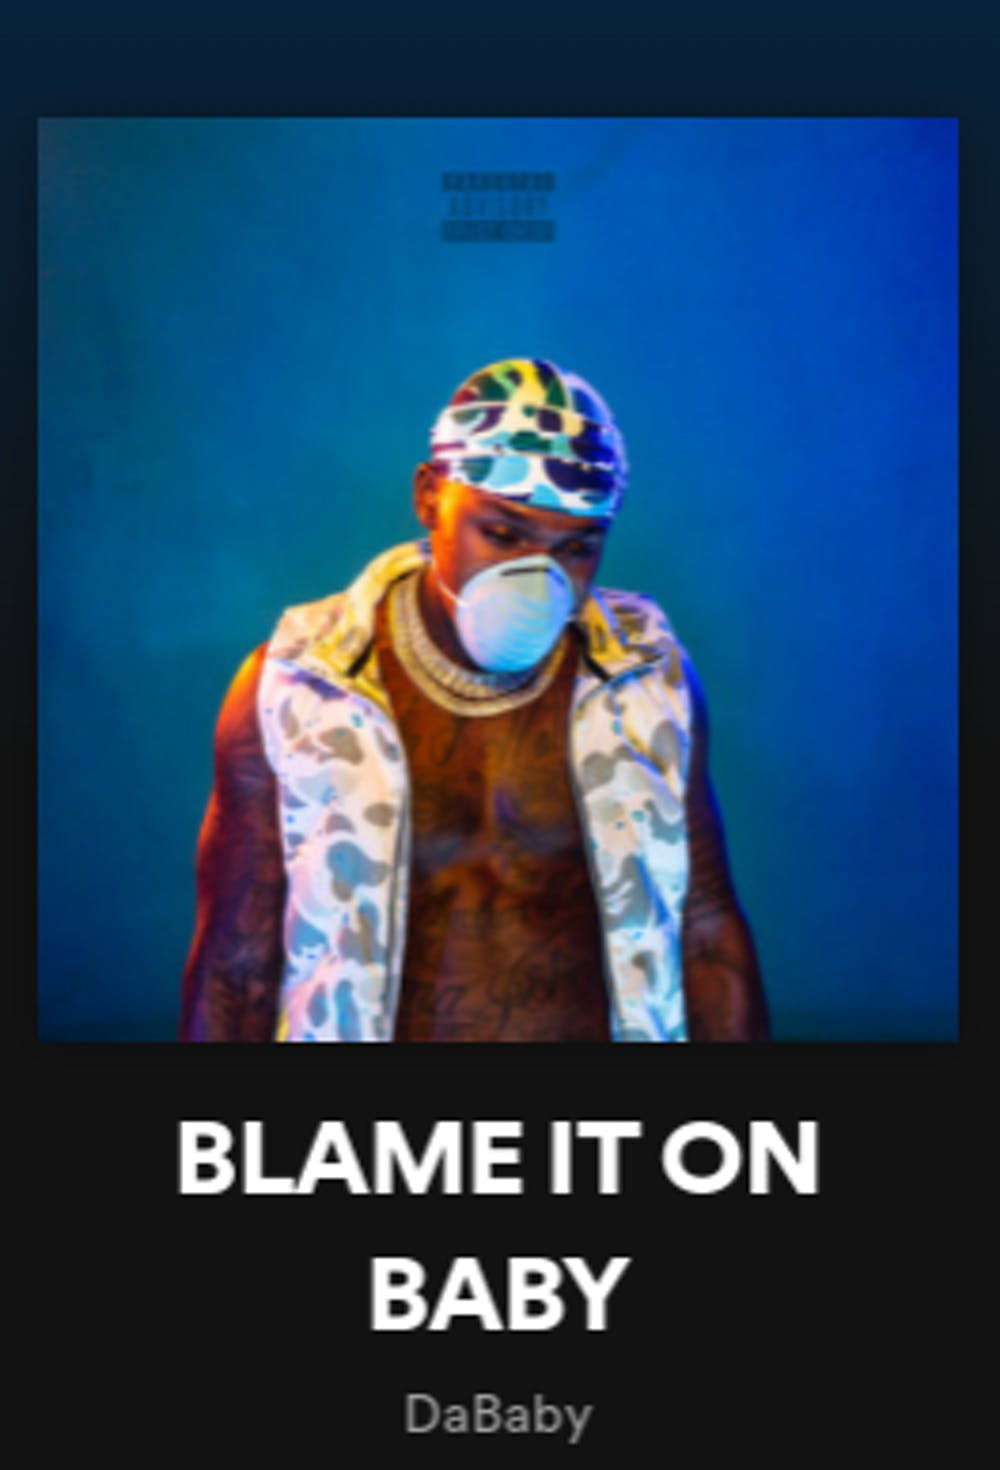 """<p>DaBaby's """"Blame It On Baby"""" offers little more than run-of-the-mill trap beats and disposable lyrics.</p>"""